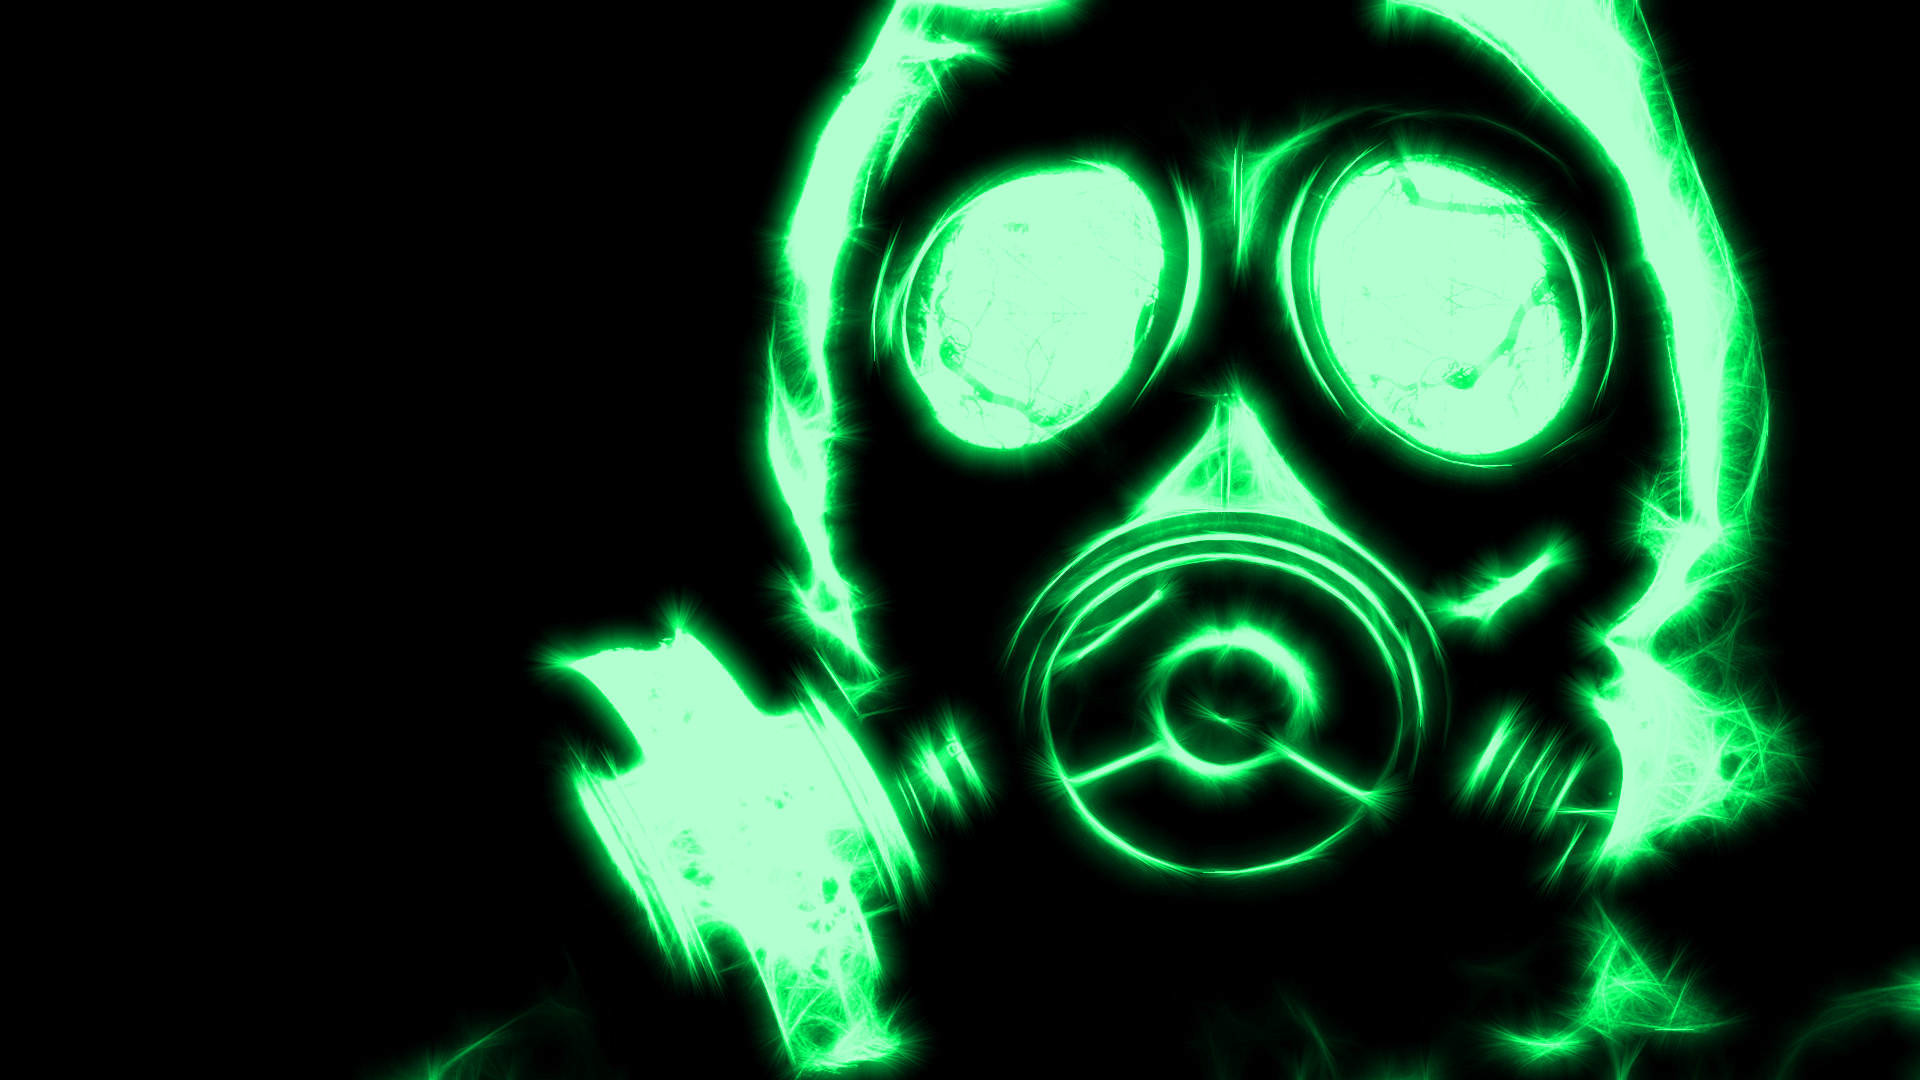 Dubstep gas mask wallpaper download voltagebd Image collections